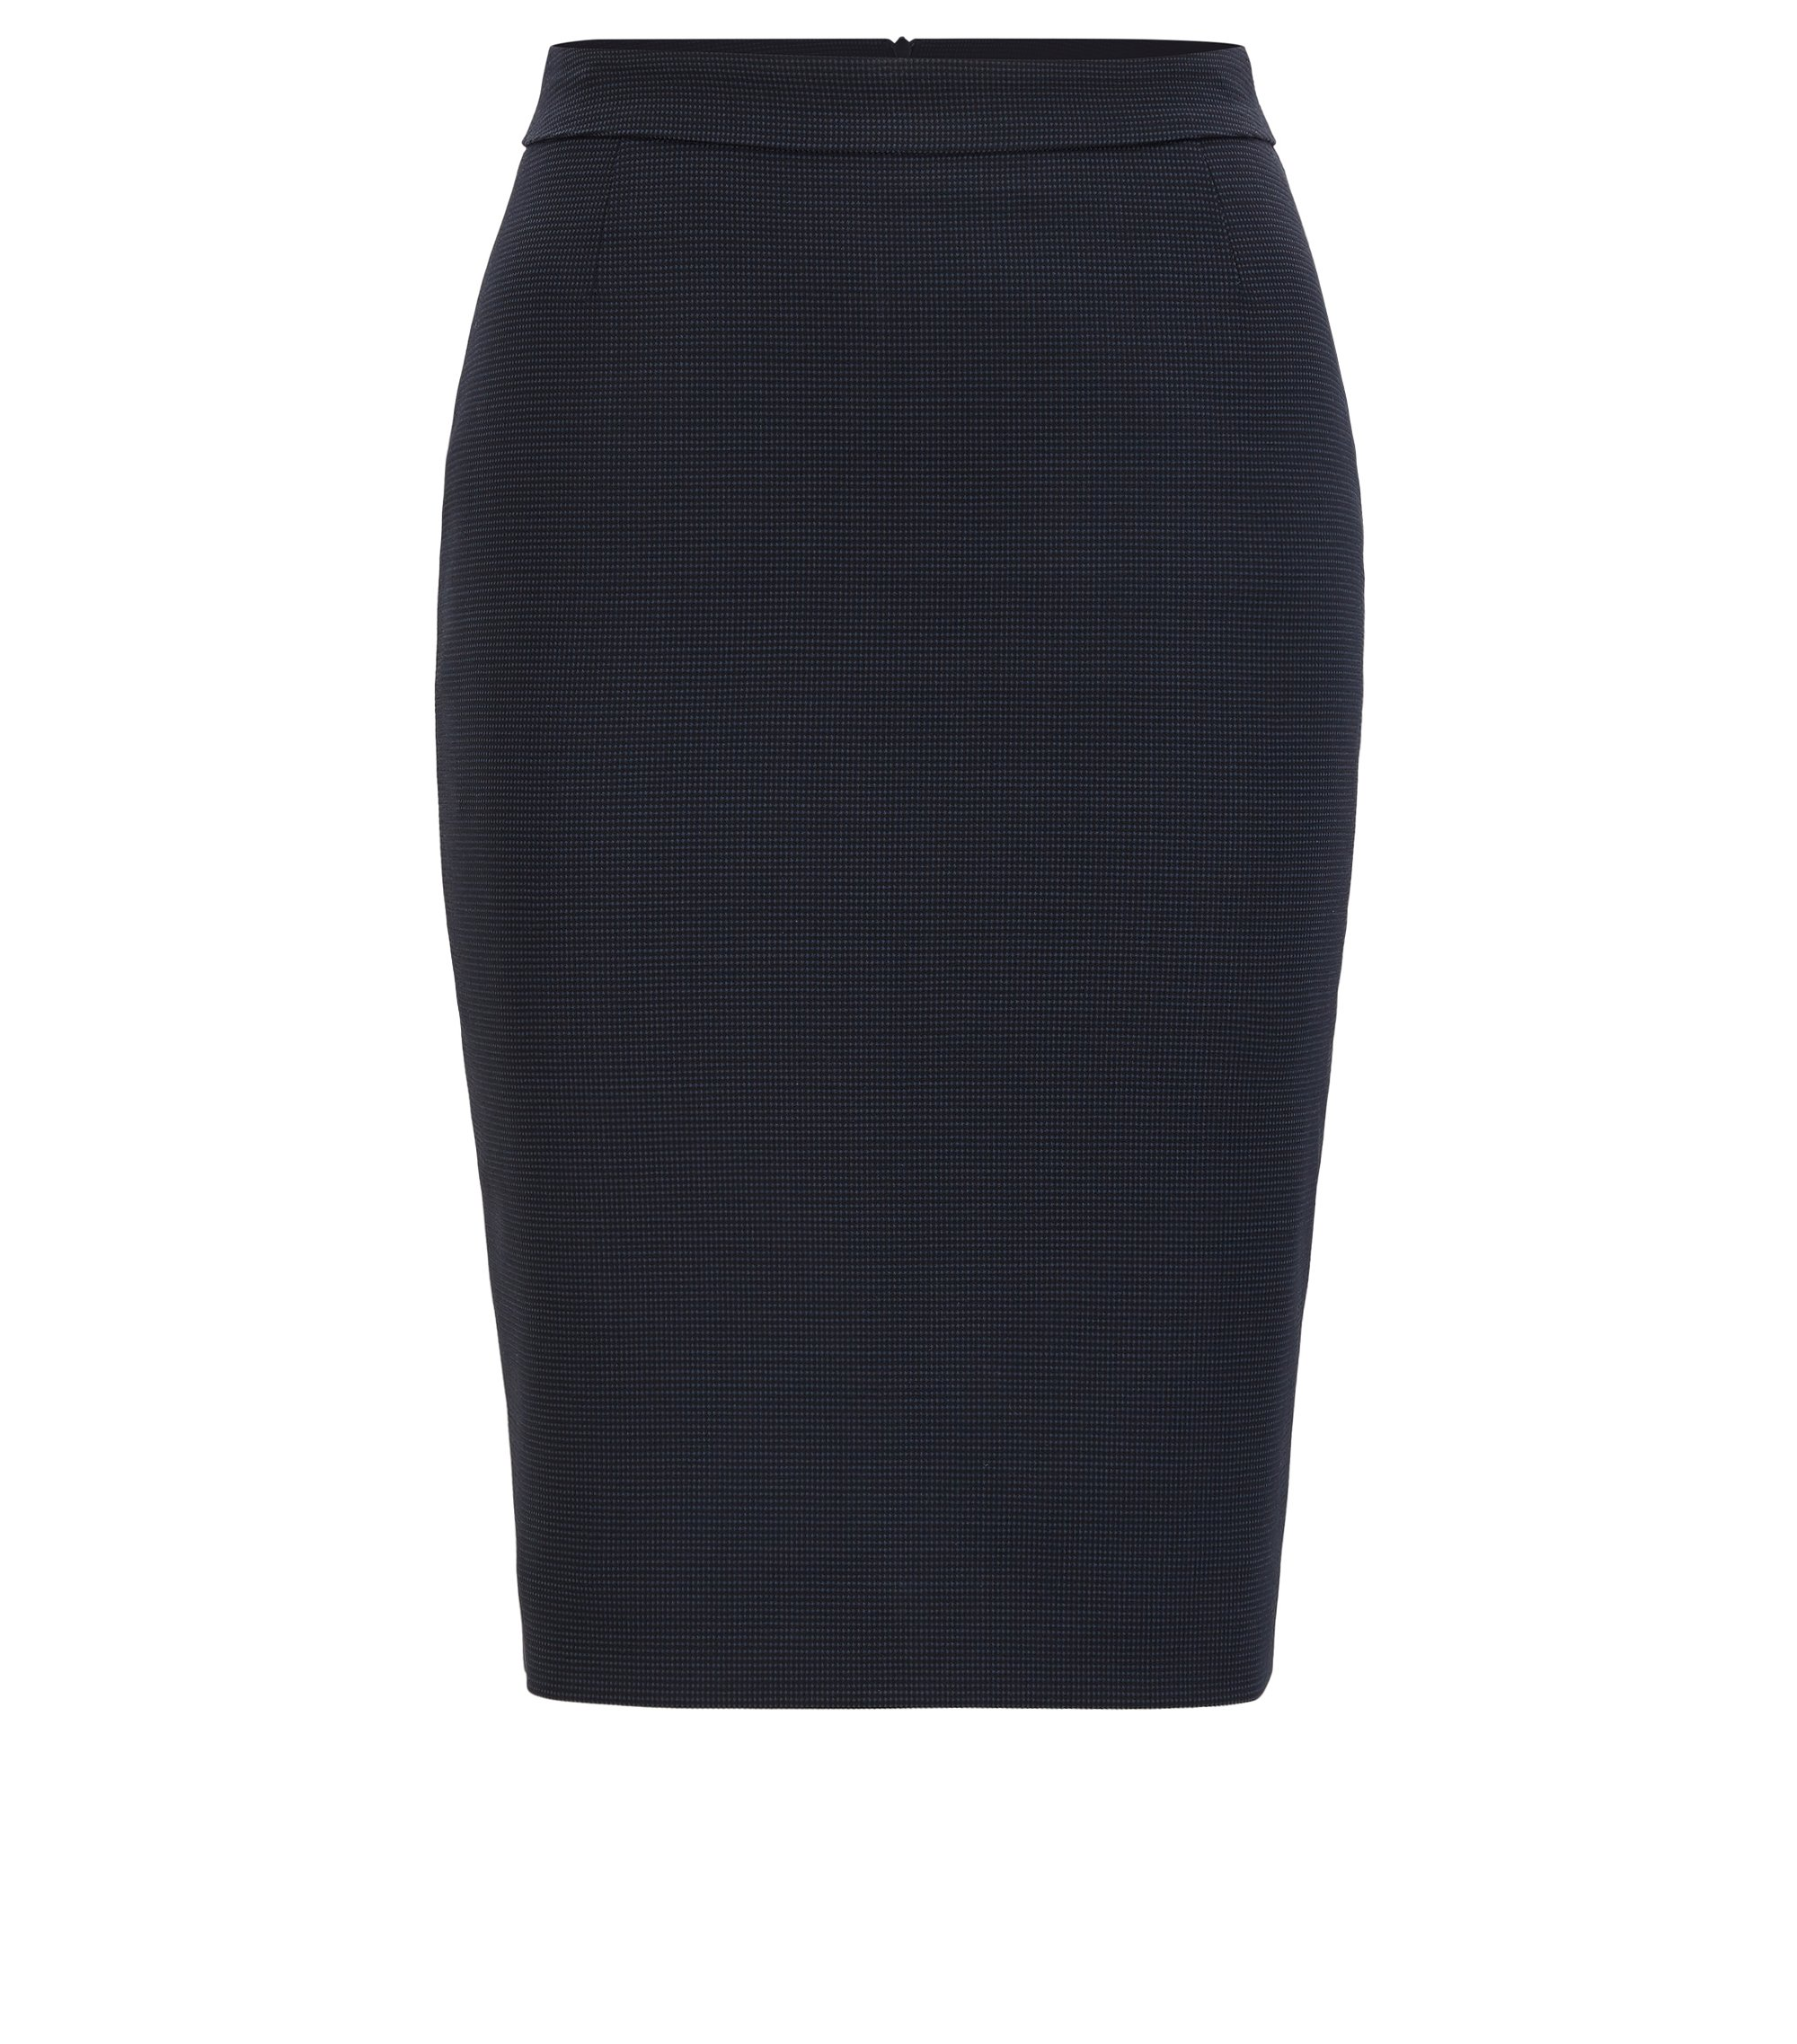 Micro-pattern pencil skirt in stretch wool, Patterned